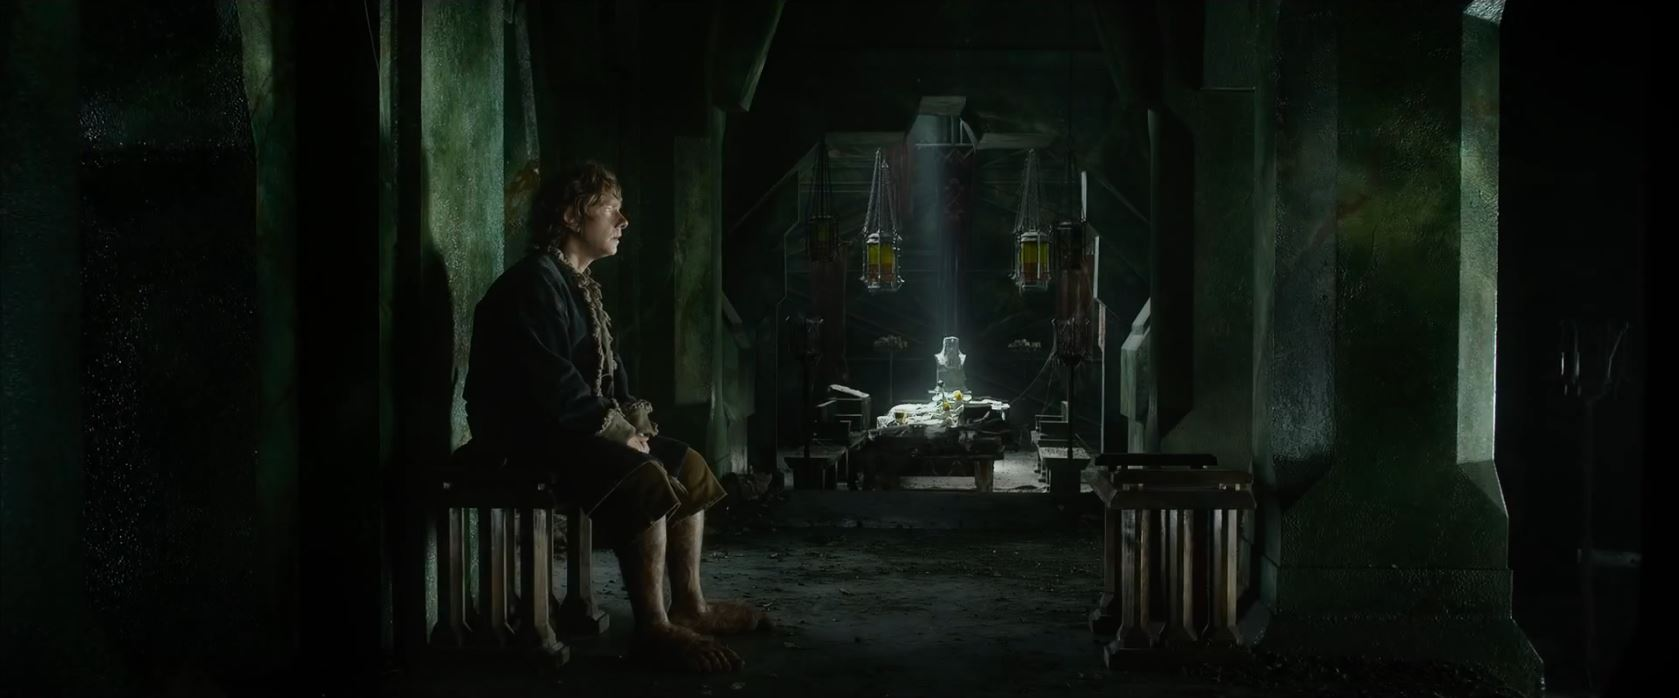 The Hobbit The Battle of the Five Armies Trailer - Martin Freeman as Bilbo Baggins